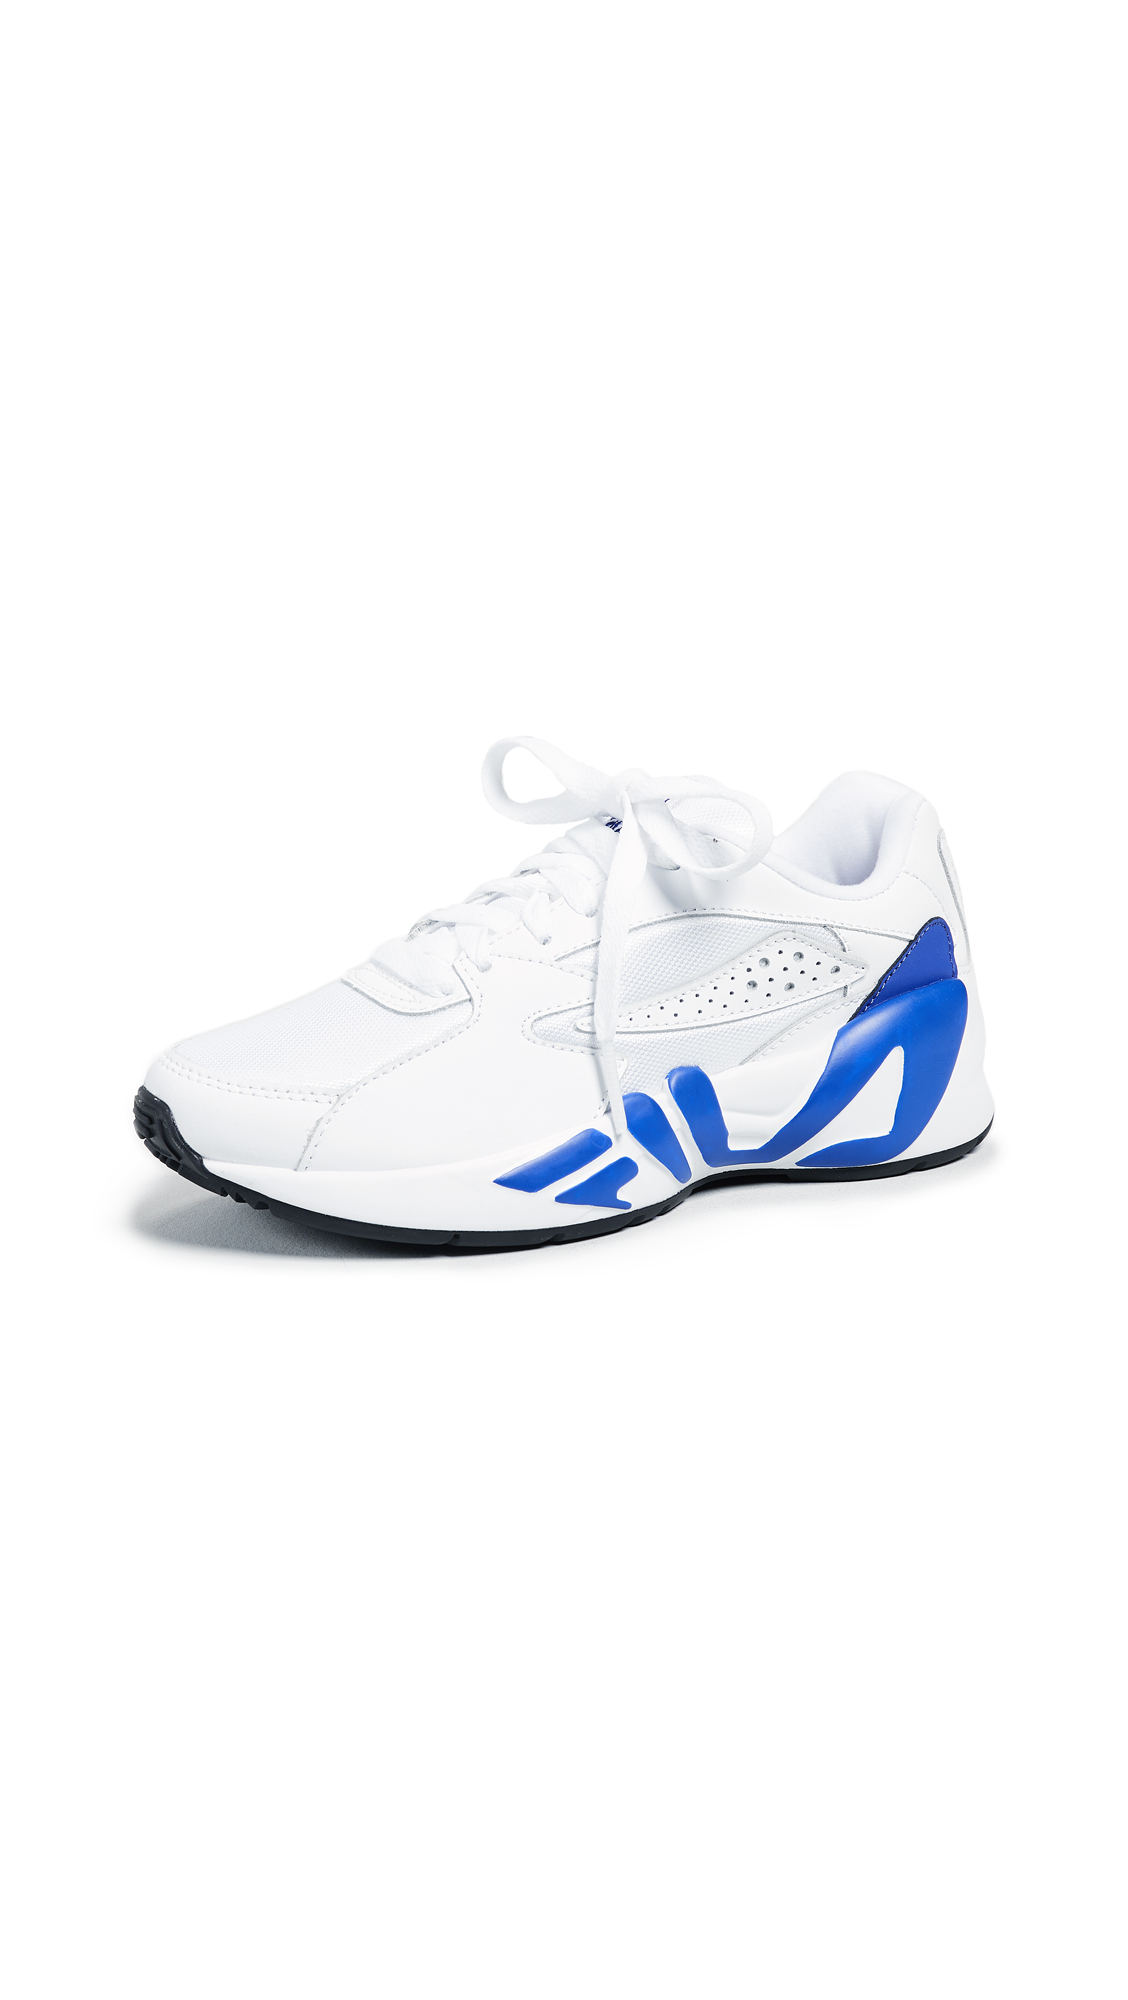 Fila Mindblower Vintage Runners - White/Royal Blue/Black